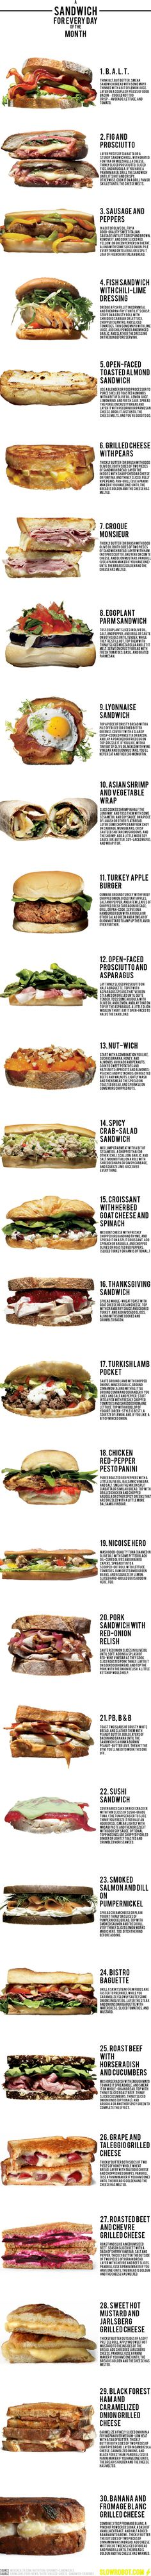 a sandwich for every day of the month!